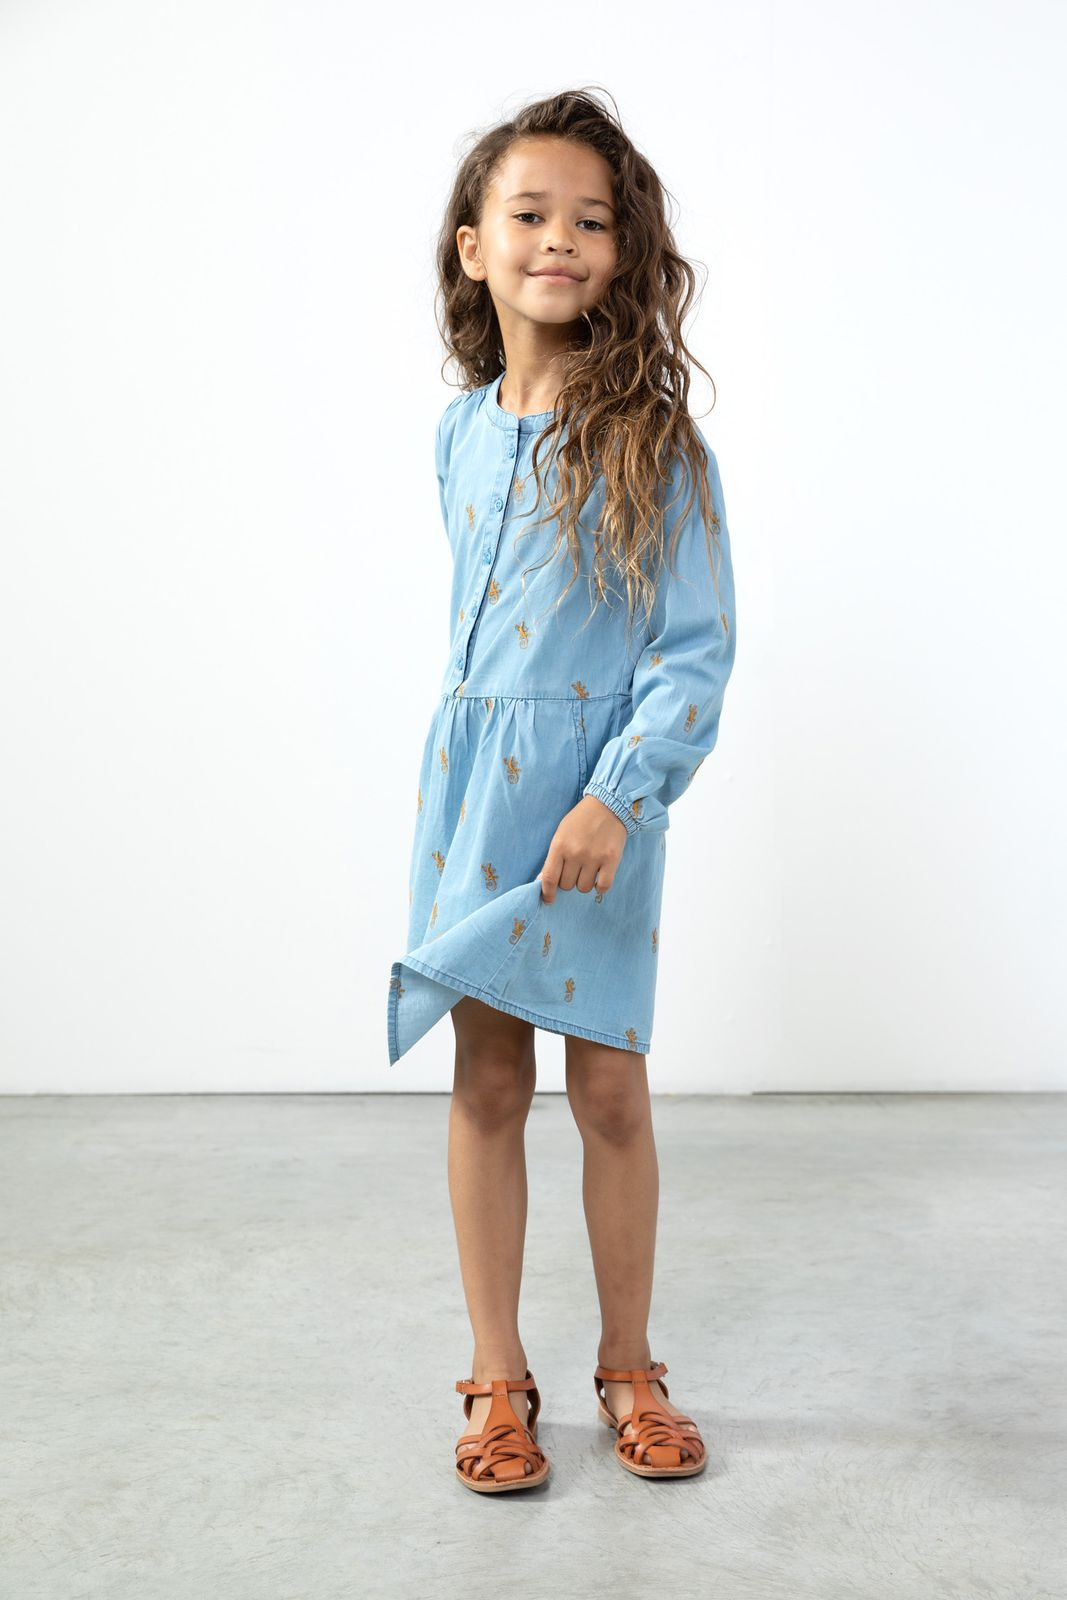 Denim jurk met gekko embroidery - Kids | Sissy-Boy